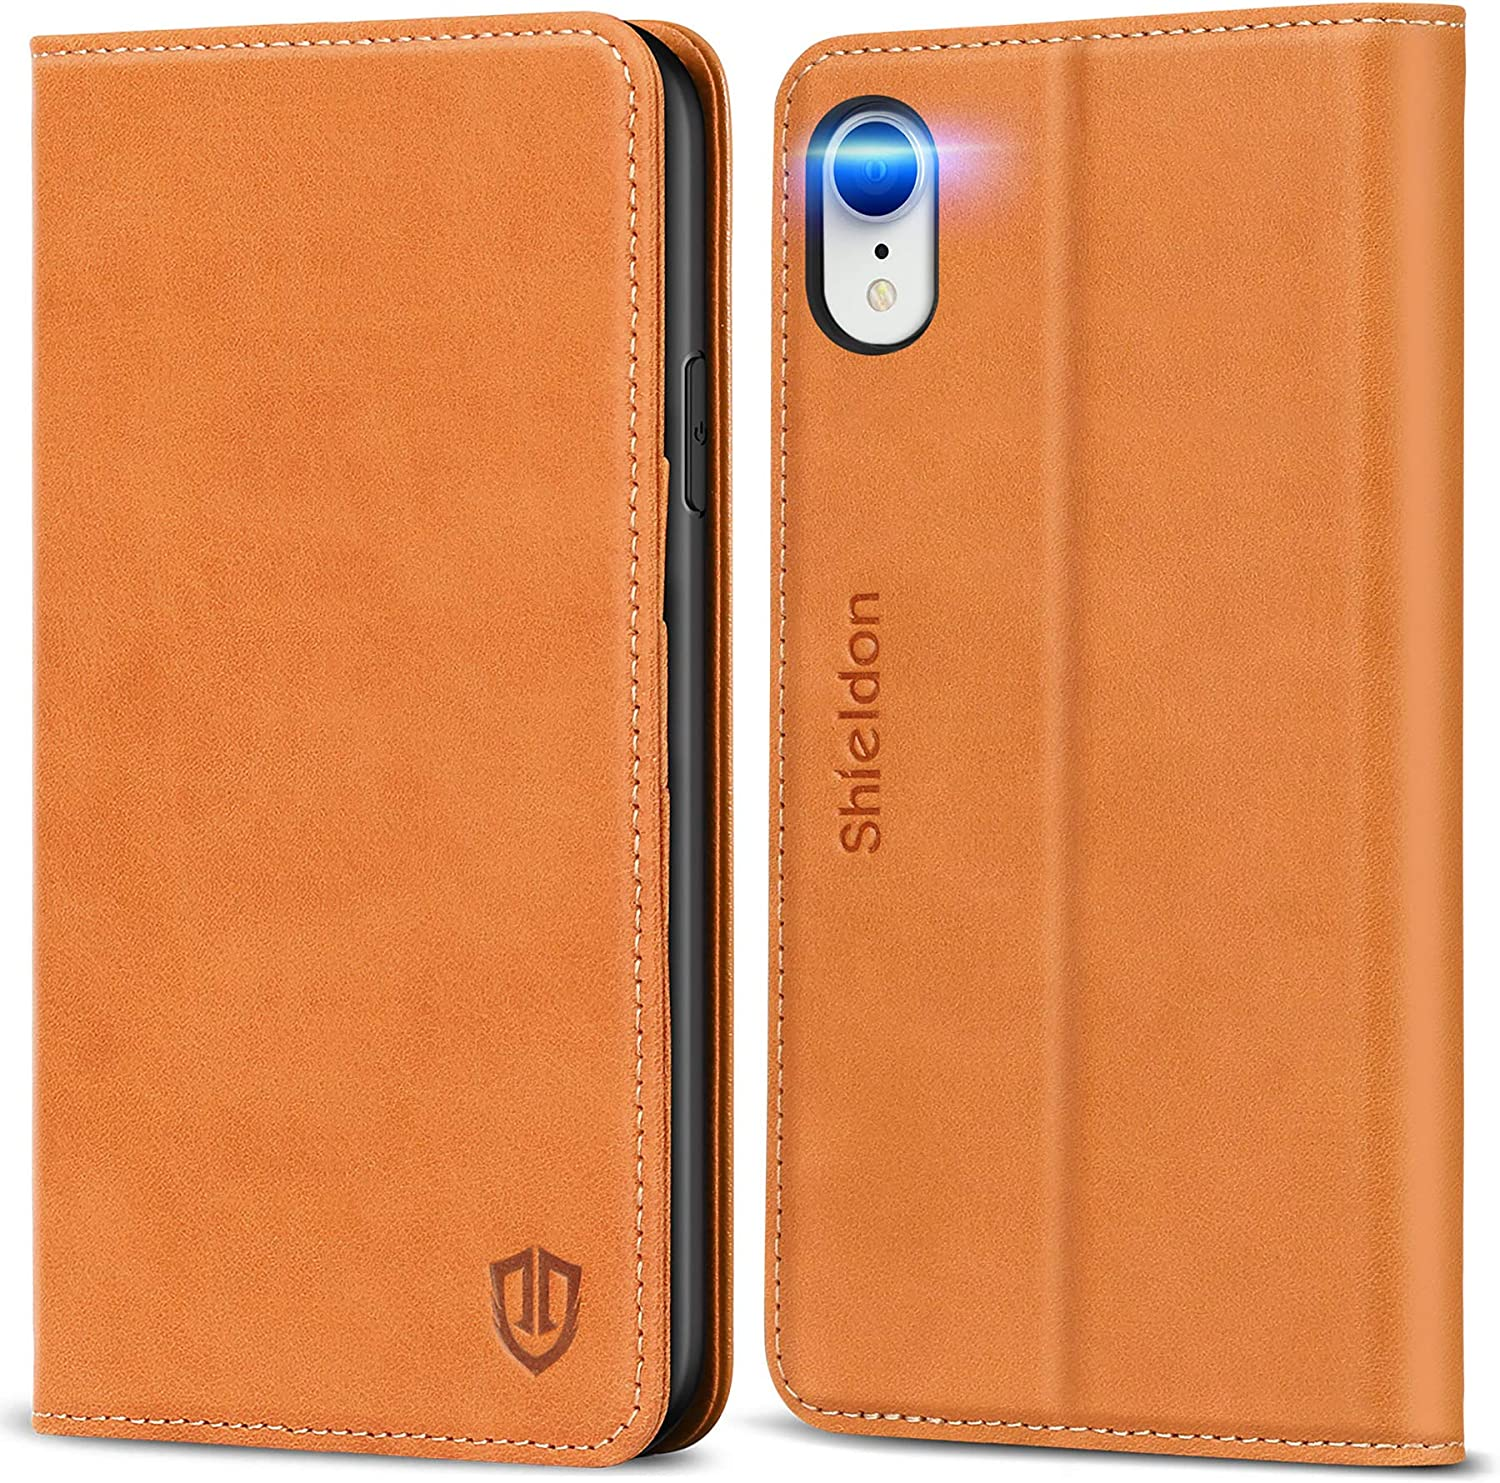 SHIELDON iPhone XR Case, Genuine Leather iPhone XR Folio Wallet Magnetic Protective Case Shock Absorbing RFID Blocking Card Holder Kickstand Compatible with iPhone XR (6.1 inch) - Brown